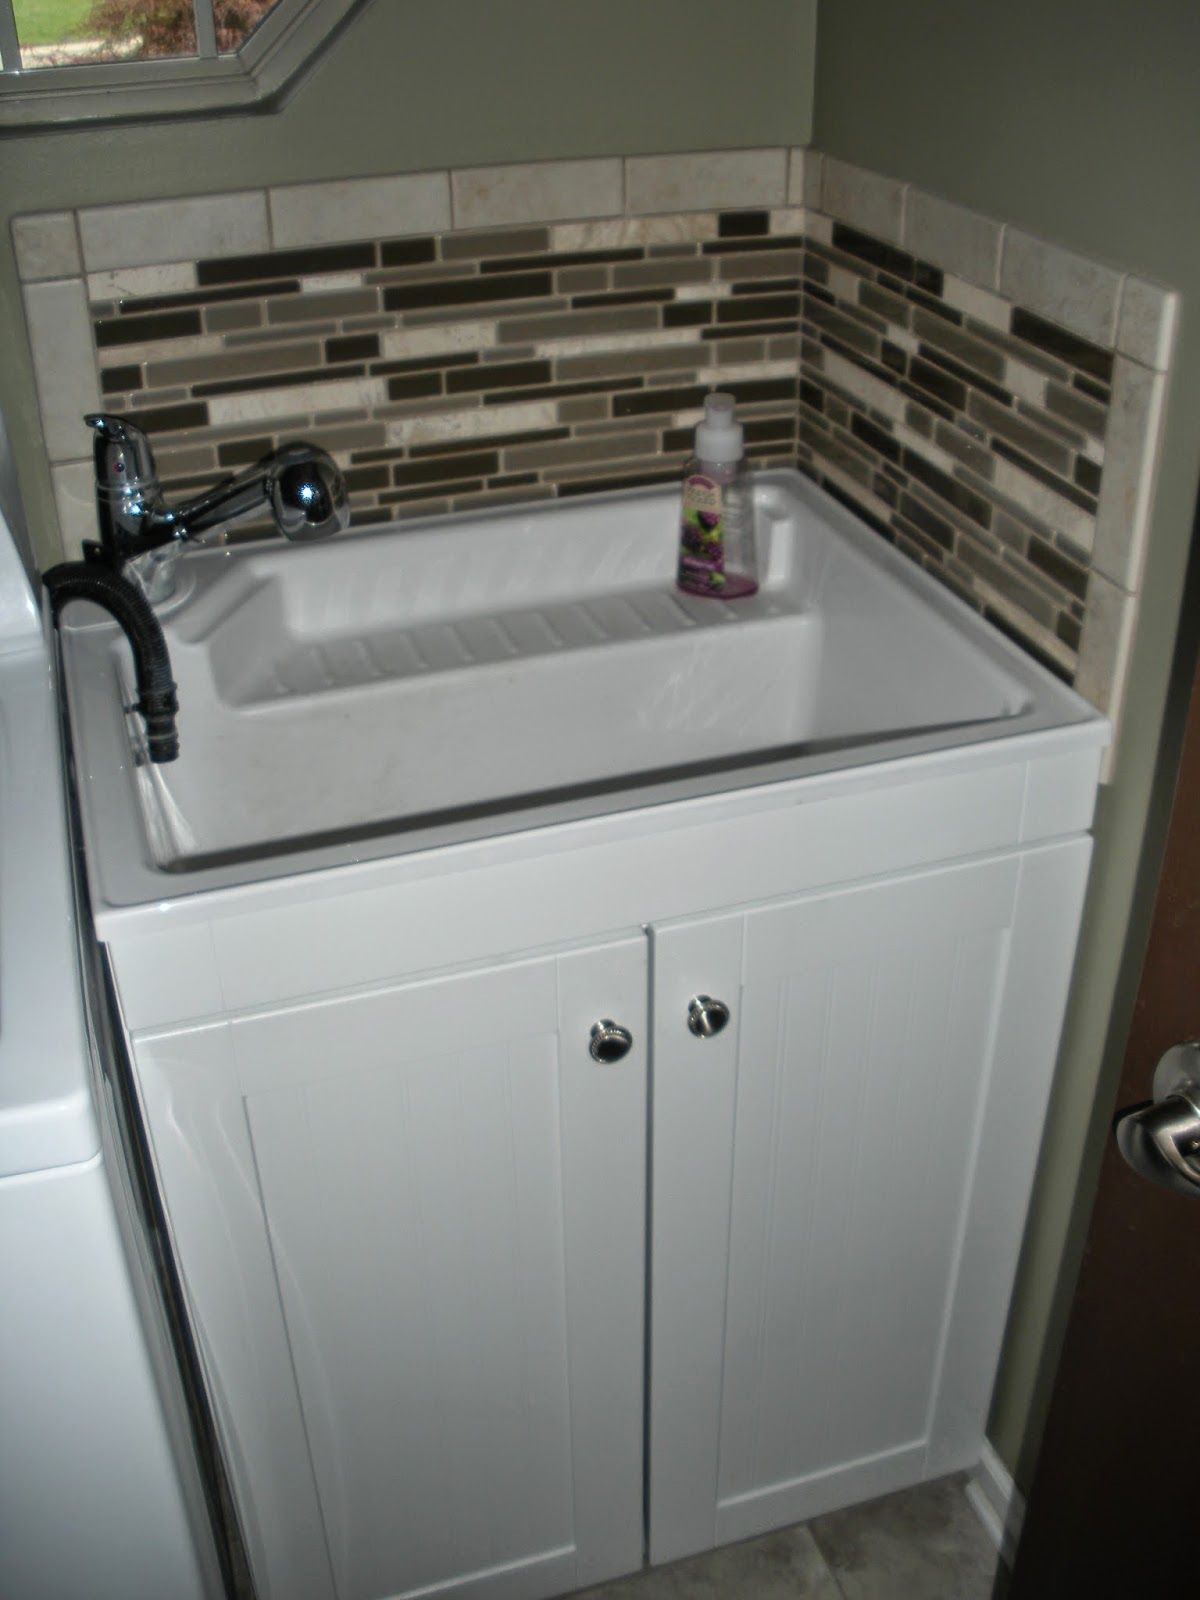 utility sink in laundry room - add tile backsplash to avoid paint